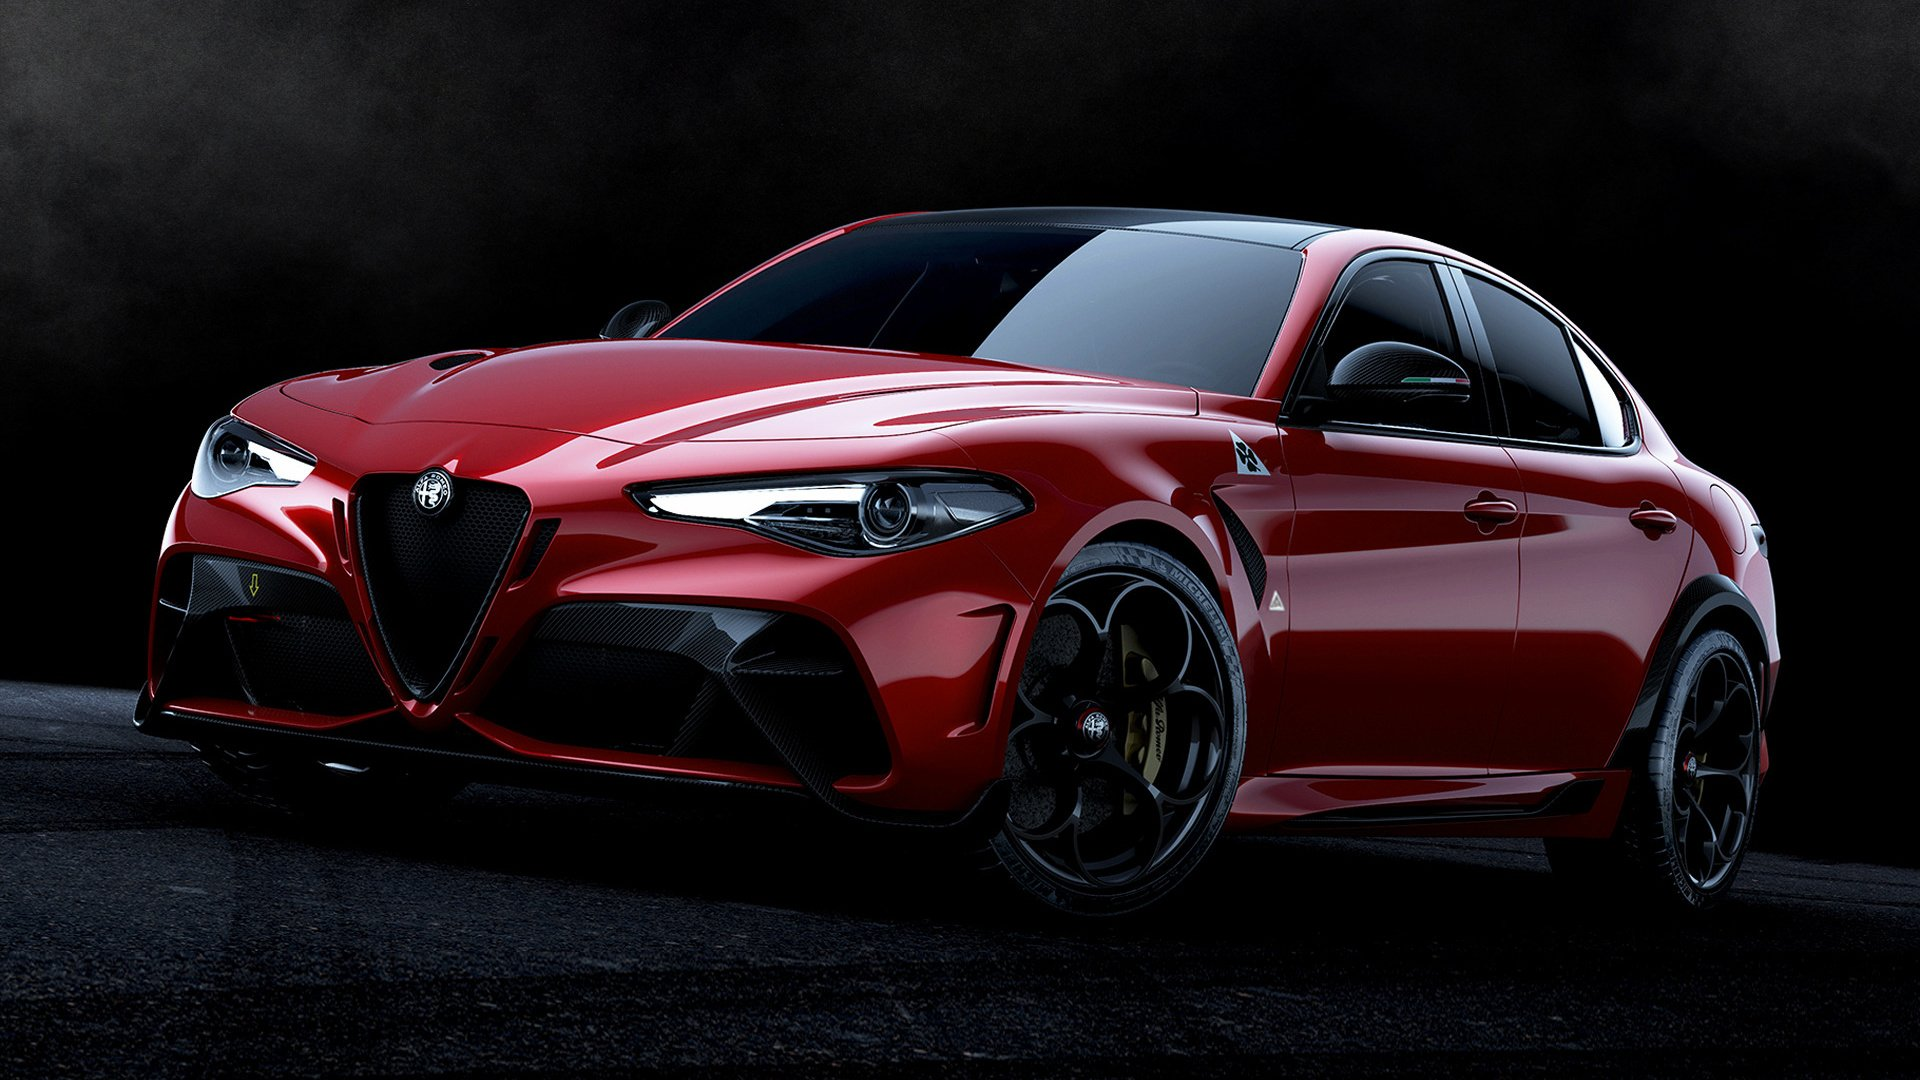 3 Alfa Romeo Giulia Gta Hd Wallpapers Background Images Wallpaper Abyss